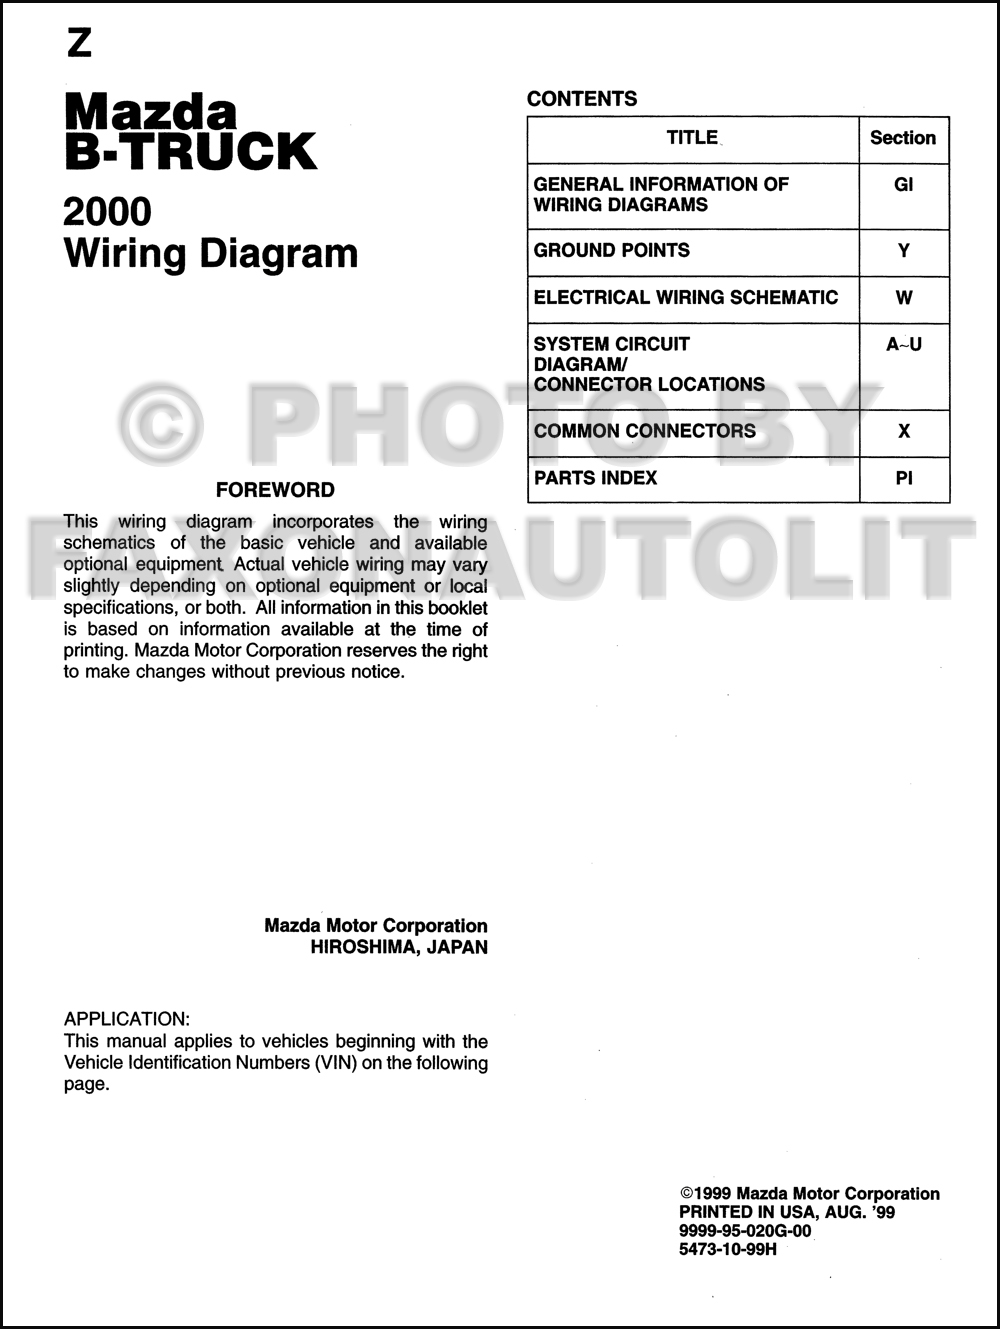 2000 mazda b series pickup truck wiring diagram manual 2000 mazda b3000 wiring diagram 2000 mazda b3000 wiring diagram 2000 mazda b3000 wiring diagram 2000 mazda b3000 wiring diagram